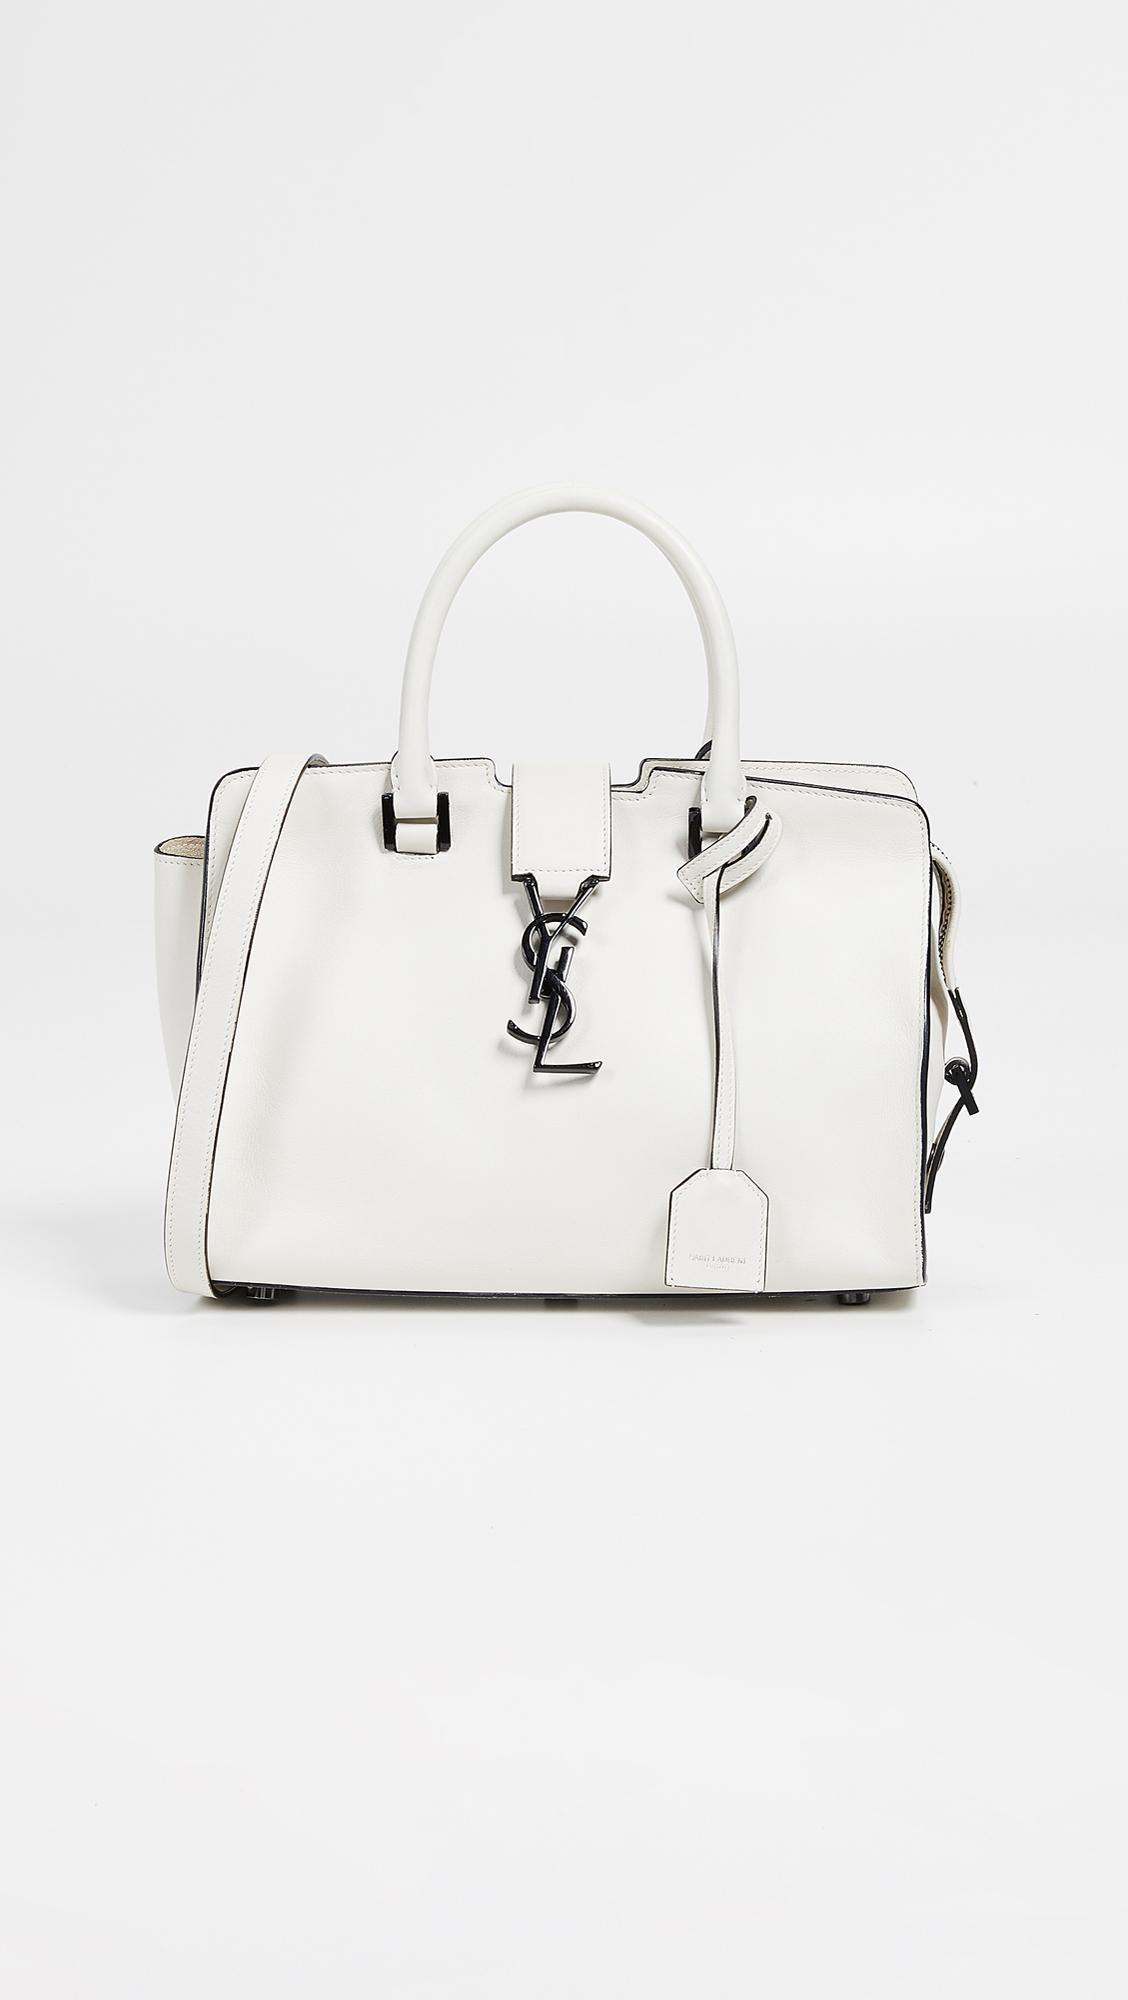 What Goes Around Comes Around. Women s Ysl White Leather Baby Cabas Bag b5d743cfdde9b